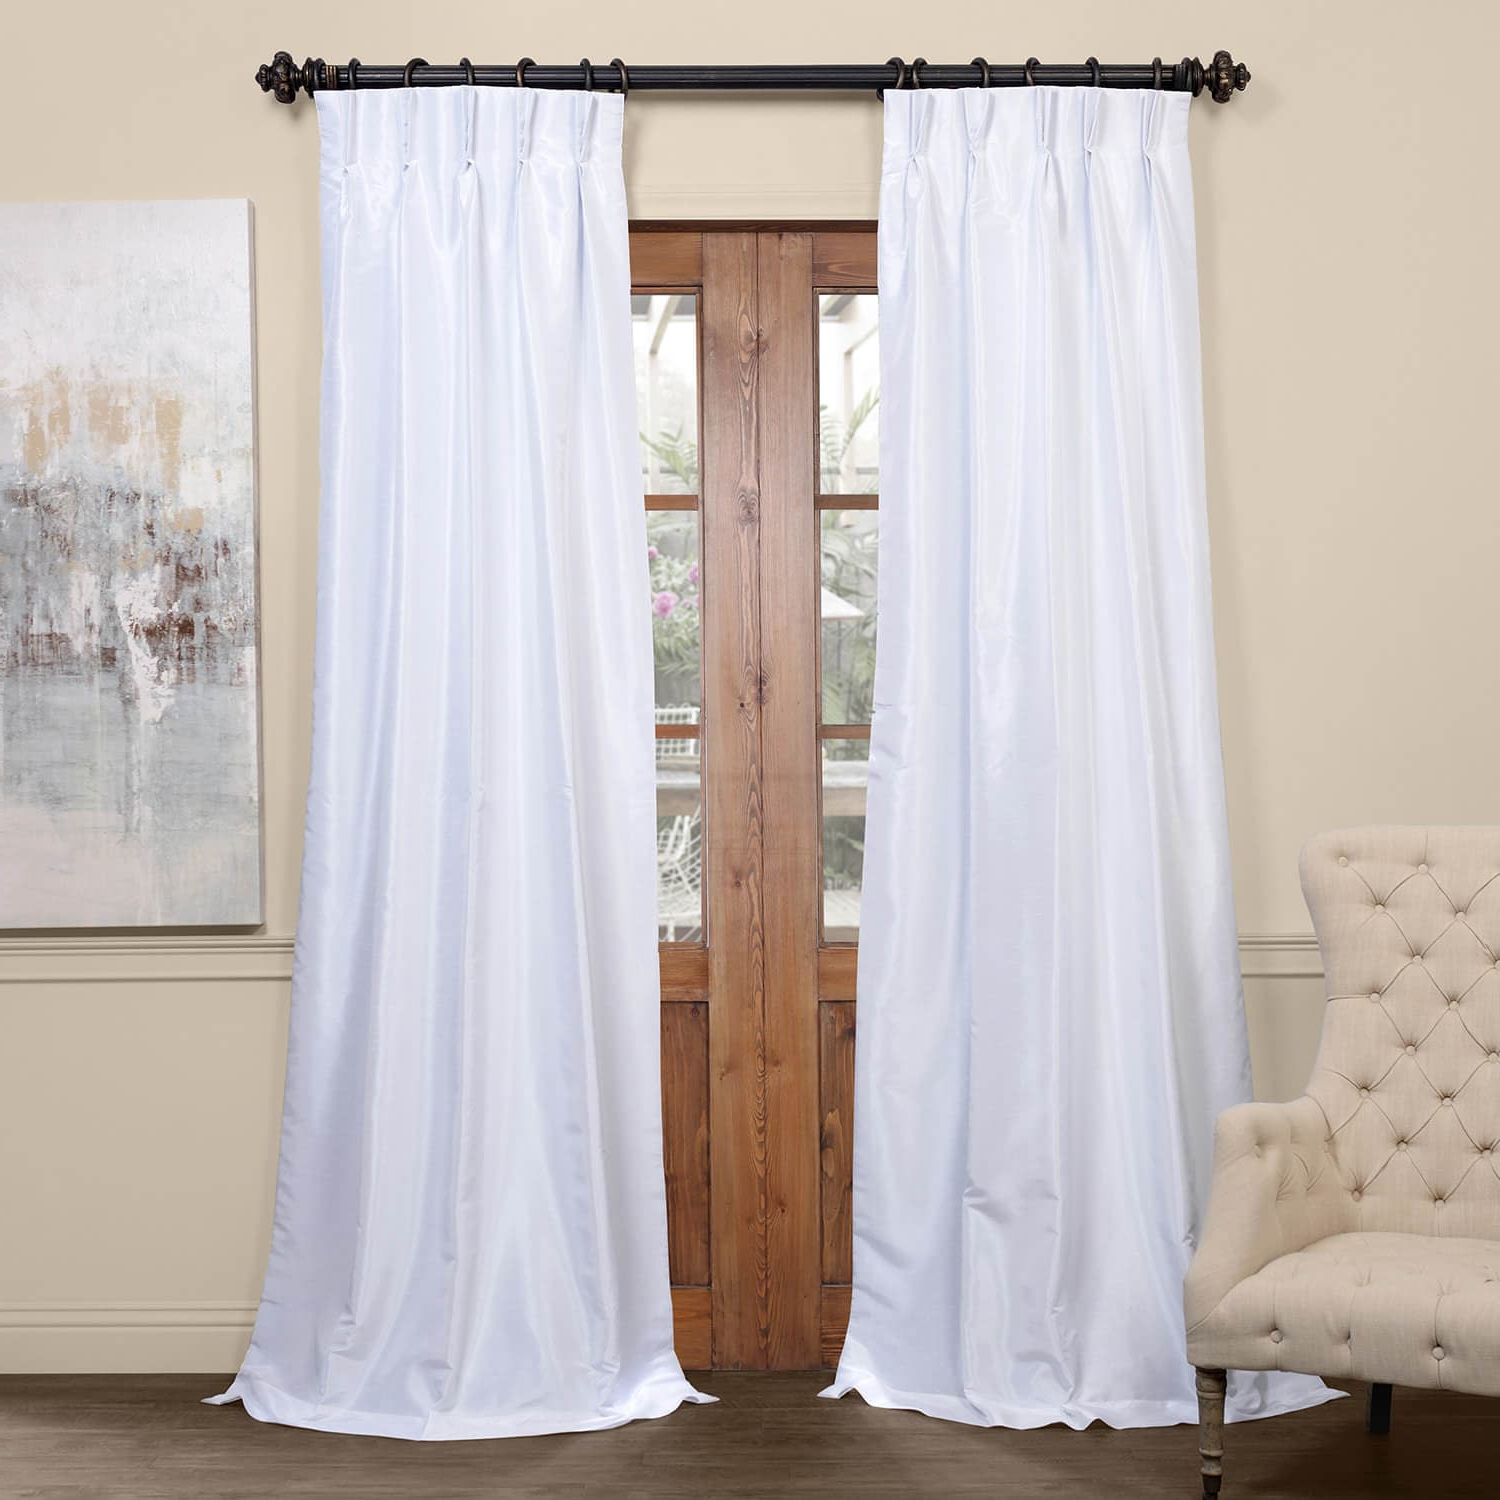 Ice Blackout Vintage Textured Faux Dupioni Pleated Curtain Intended For Widely Used Vintage Textured Faux Dupioni Silk Curtain Panels (View 20 of 20)